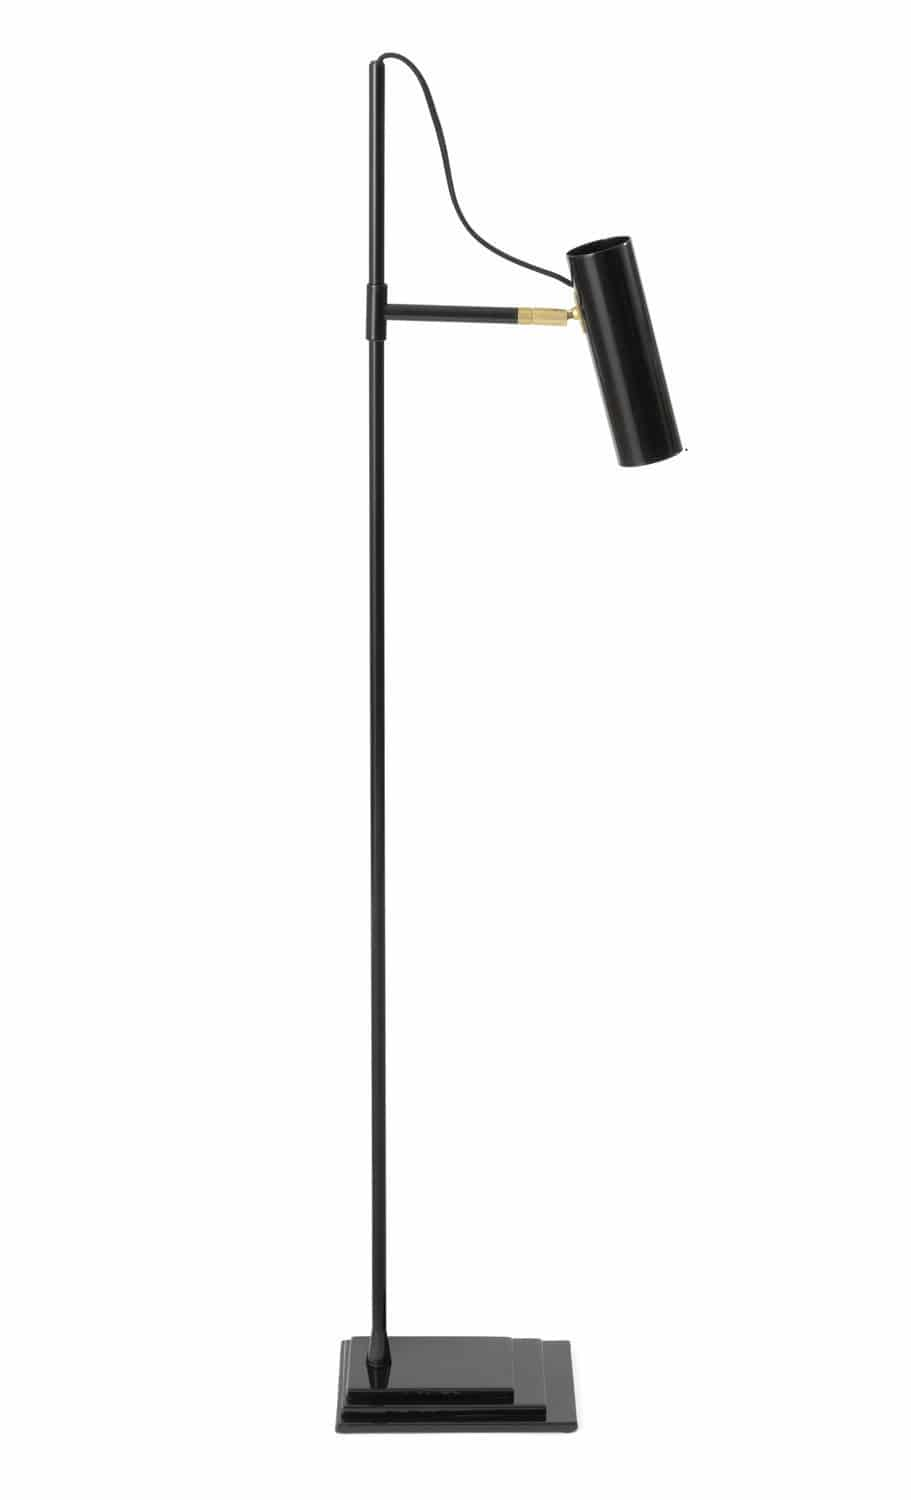 ... Floor-standing l& / contemporary / iron / brass NOMAD by Niclas Hoflin Ruben Lighting ...  sc 1 st  ArchiExpo & Floor-standing lamp / contemporary / iron / brass - NOMAD by ... azcodes.com